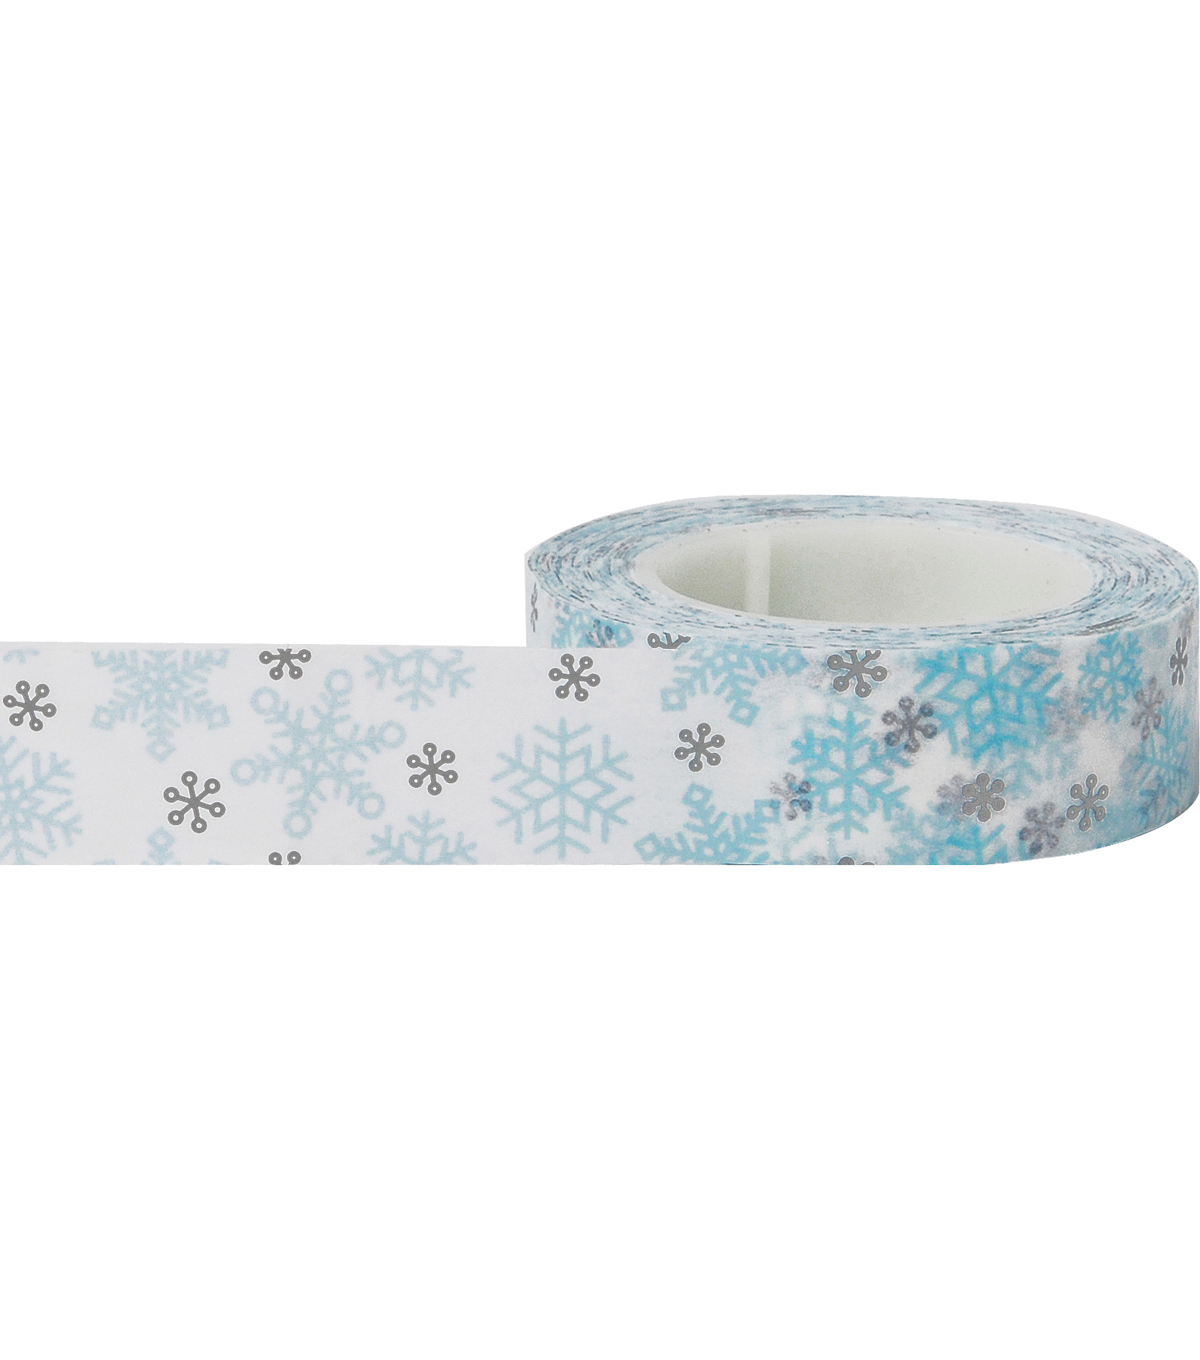 Little B Decorative paper Tape 15mmx15m-Winter Snowflakes